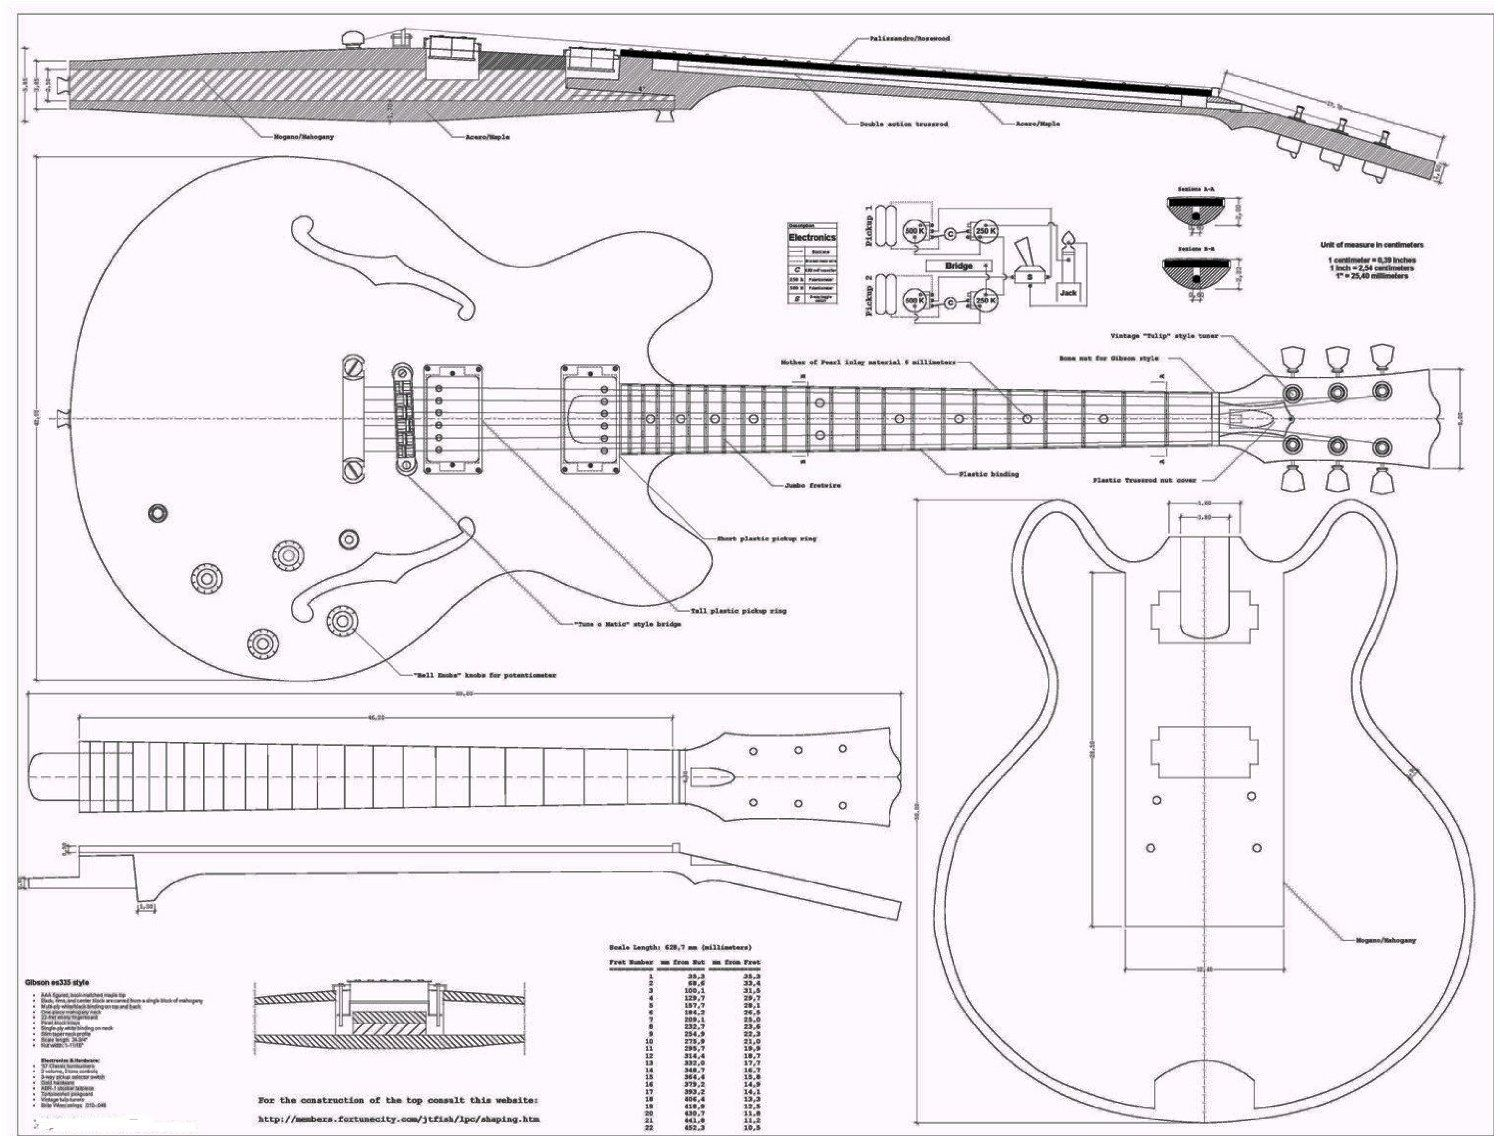 Dovetail template printable guitar - Electric Guitar Designs Google Search